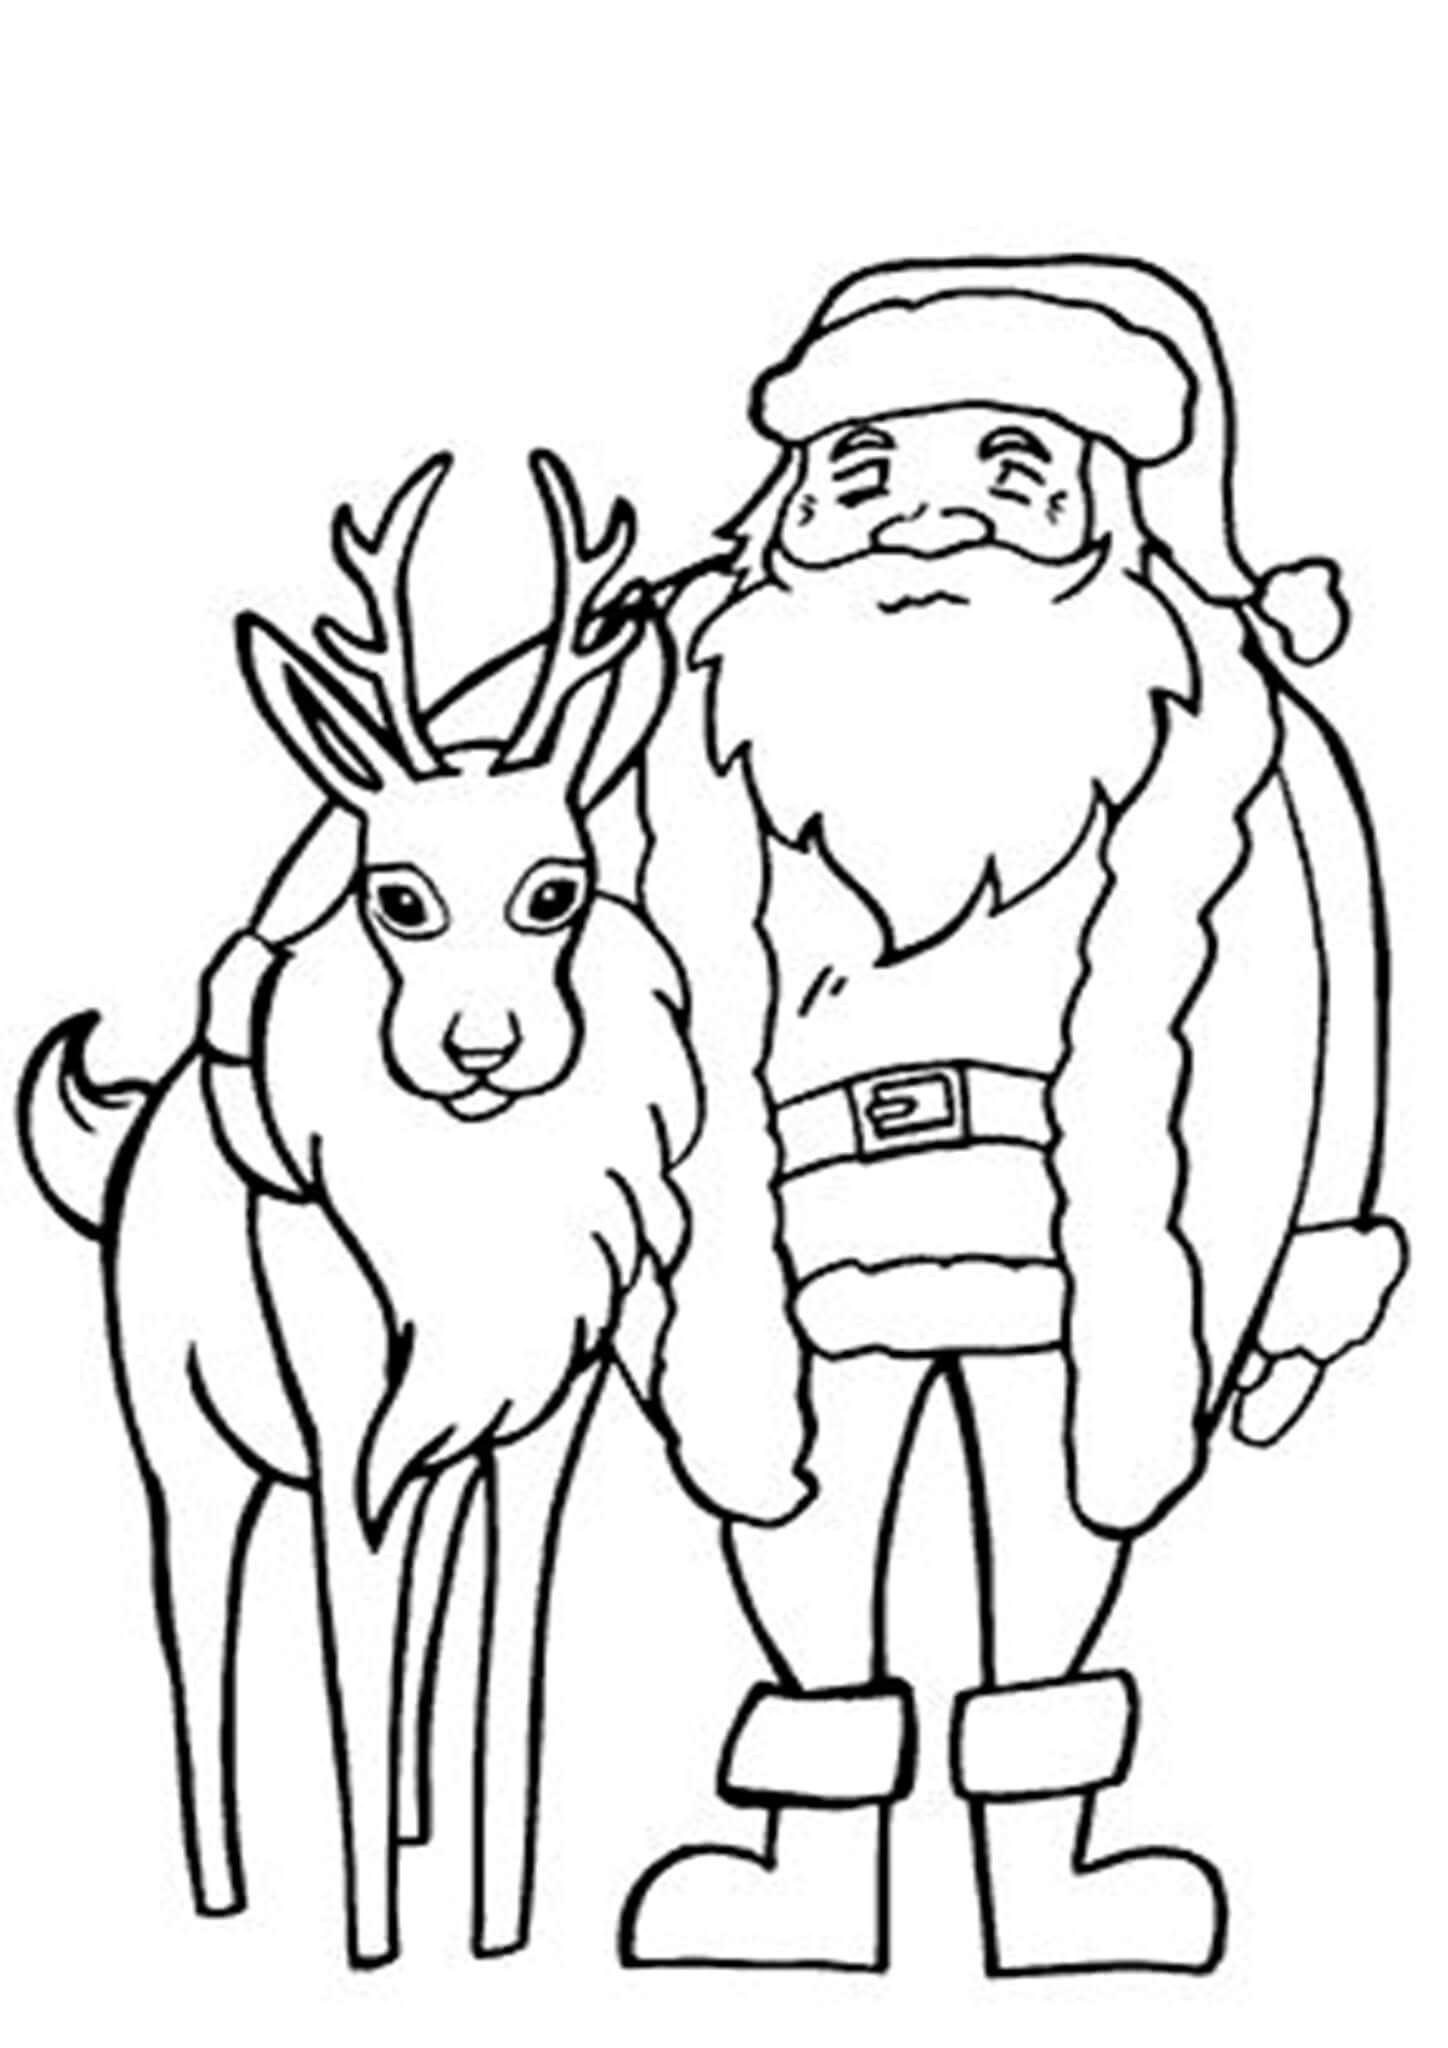 Free Printable Reindeer Coloring Pages Valentines Day Coloring Page Easter Coloring Pages Valentines Day Coloring